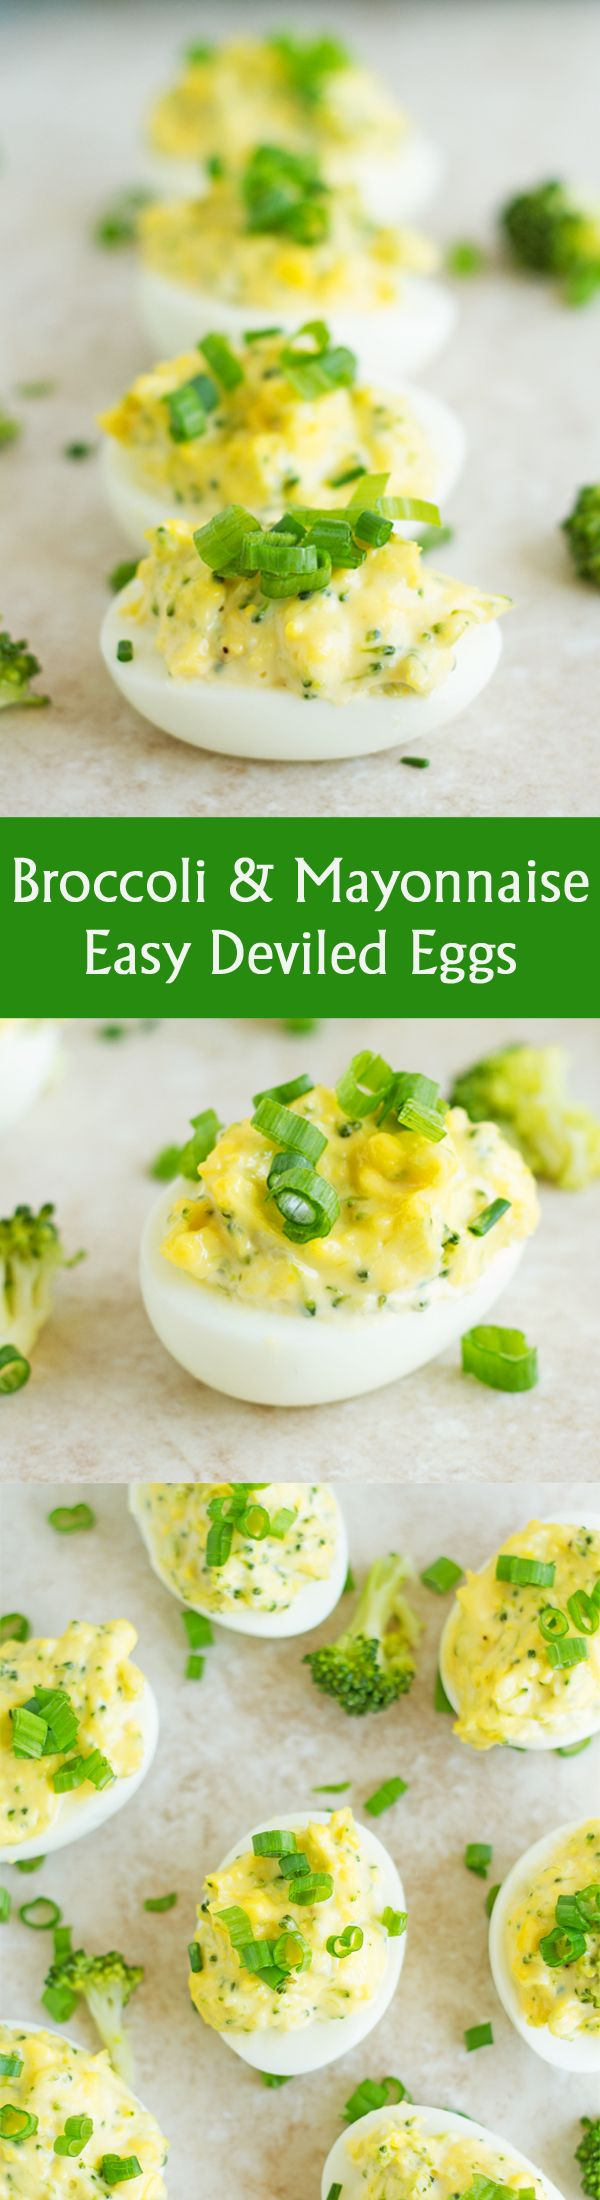 Broccoli & Mayonnaise Easy Deviled Eggs - Vegetarian easy deviled eggs recipe stuffed with broccoli and mayonnaise. This is perfect for Easter, brunch, appetizer or any Party! It can be served with bread of bun by ilonaspassion.com I @Ilona's Passion